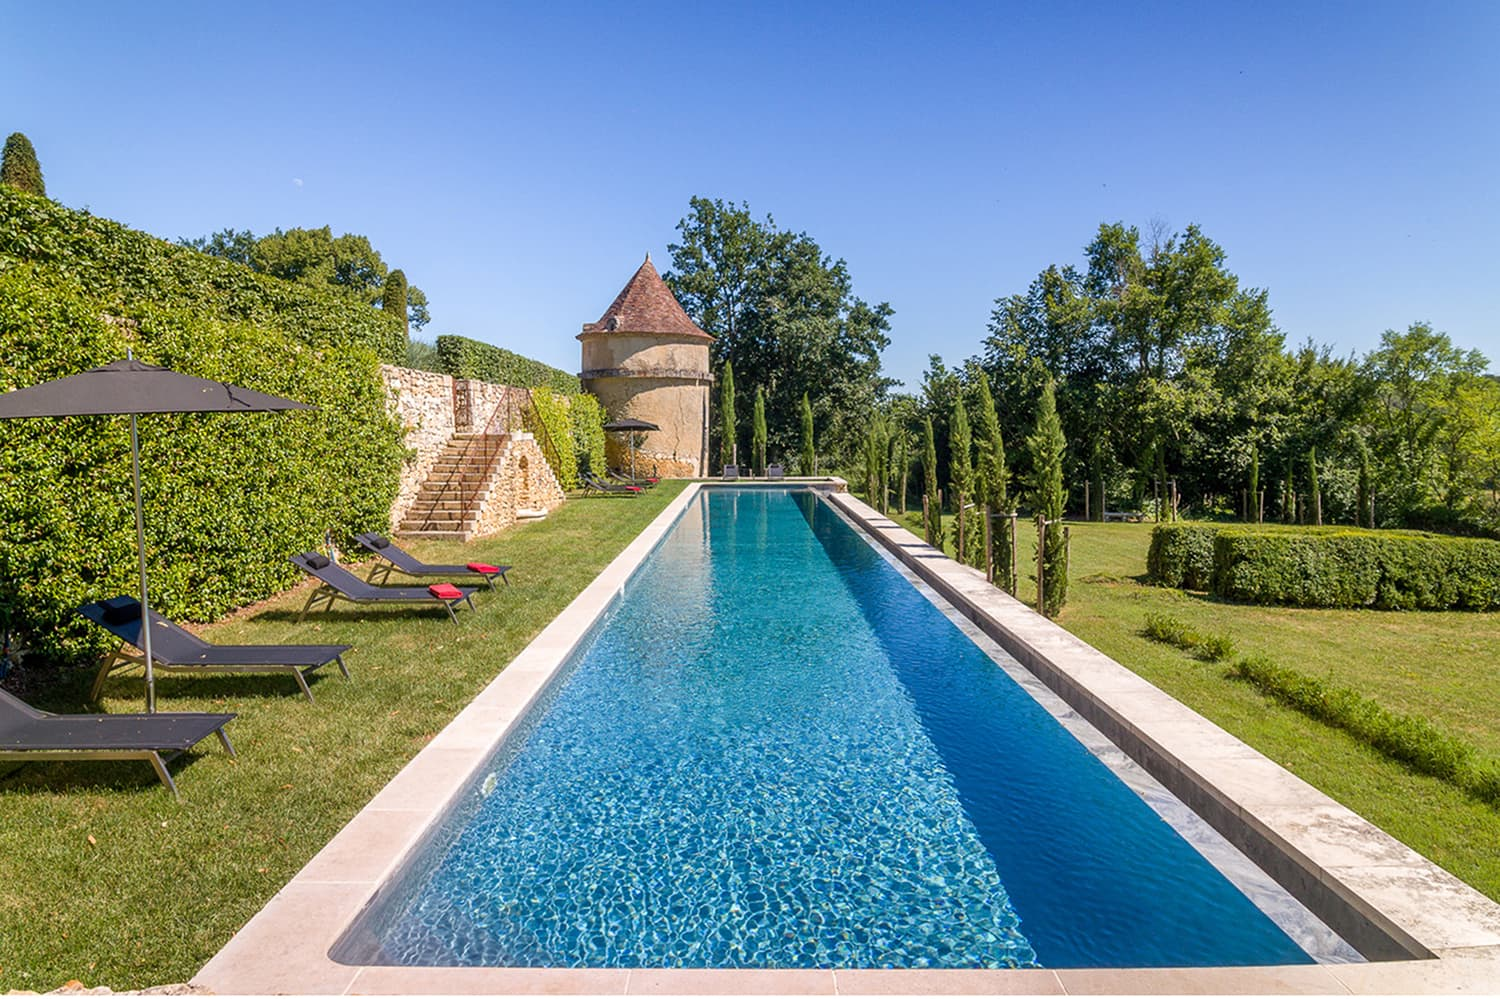 Holiday home with private swimming pool in France | Château du Pic de Rigaud